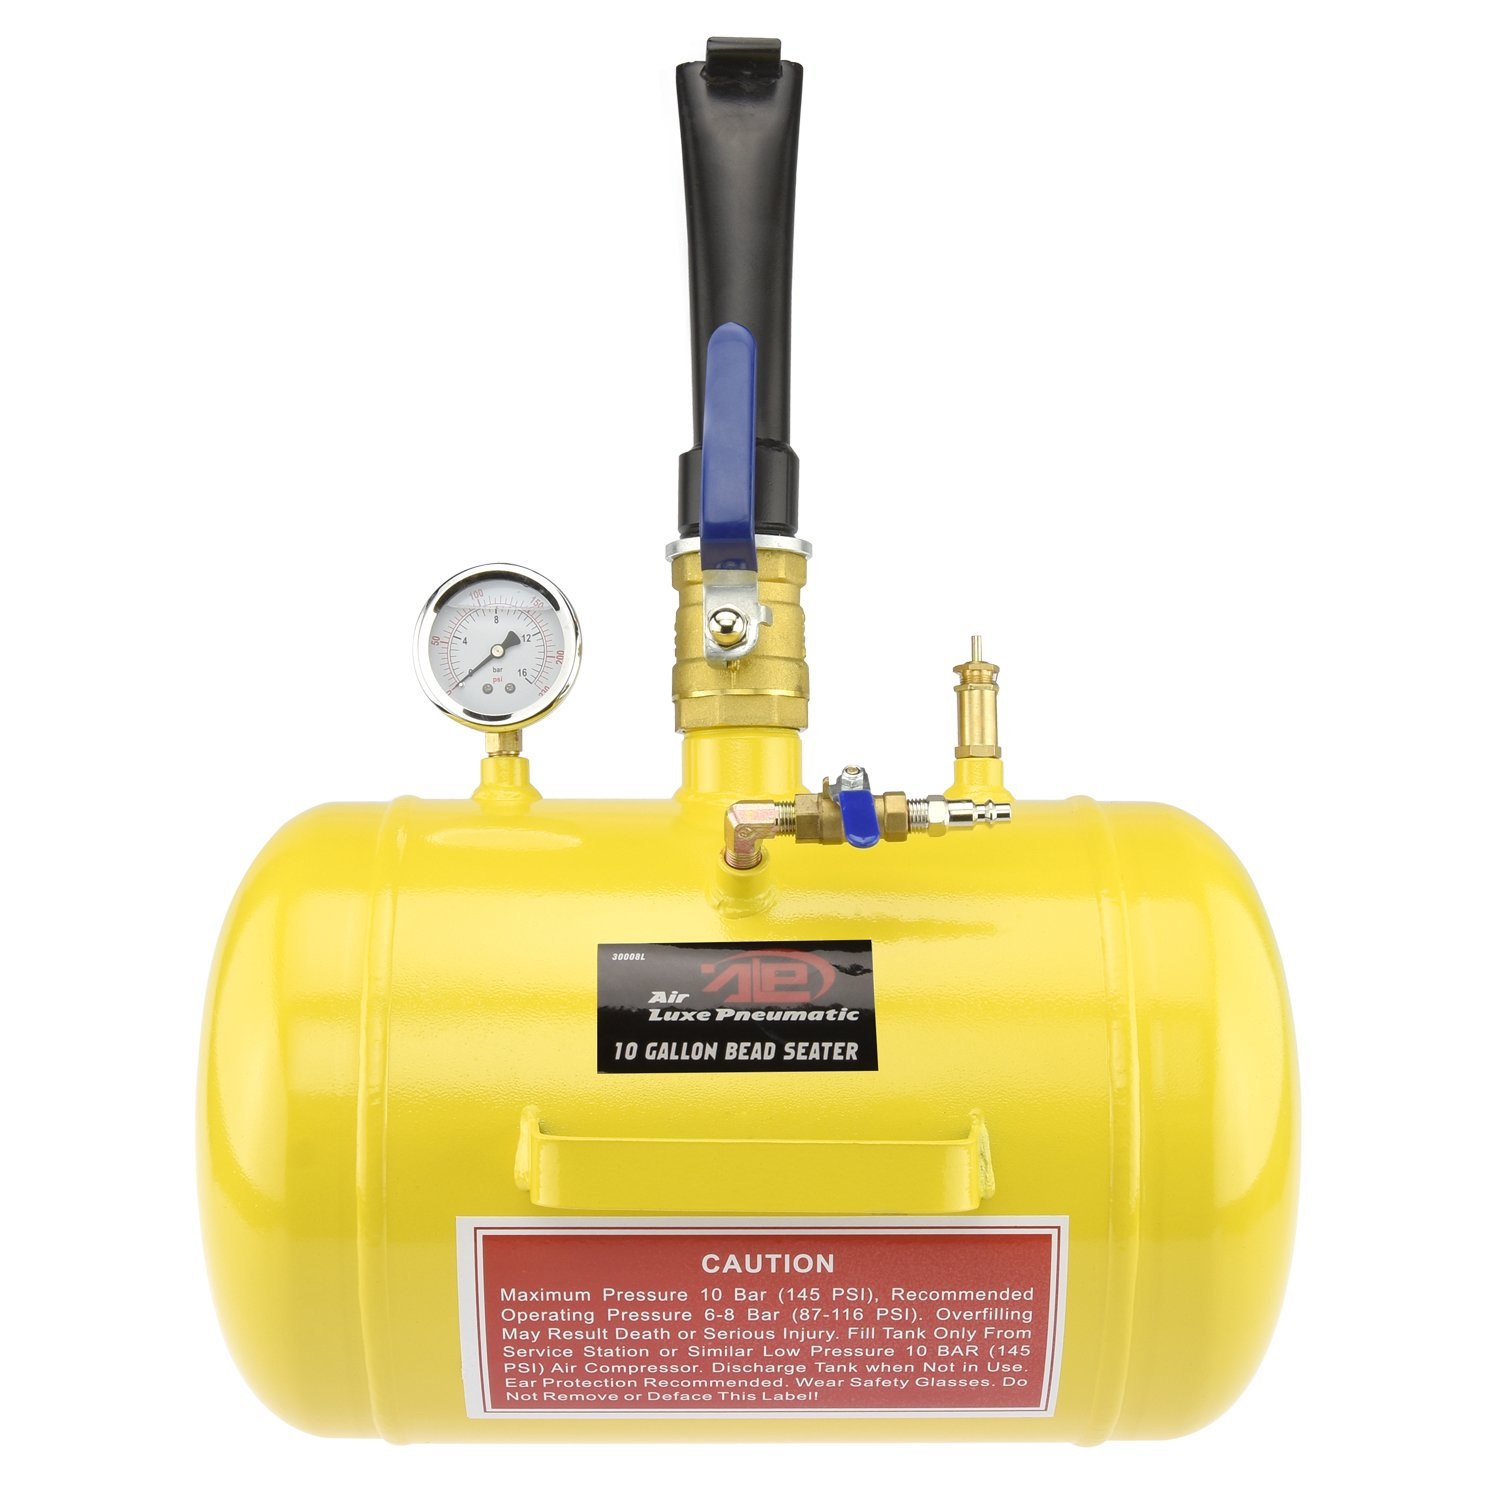 Tooluxe Tire Air Bead Seater Tool - 10-Gallon Capacity for Truck